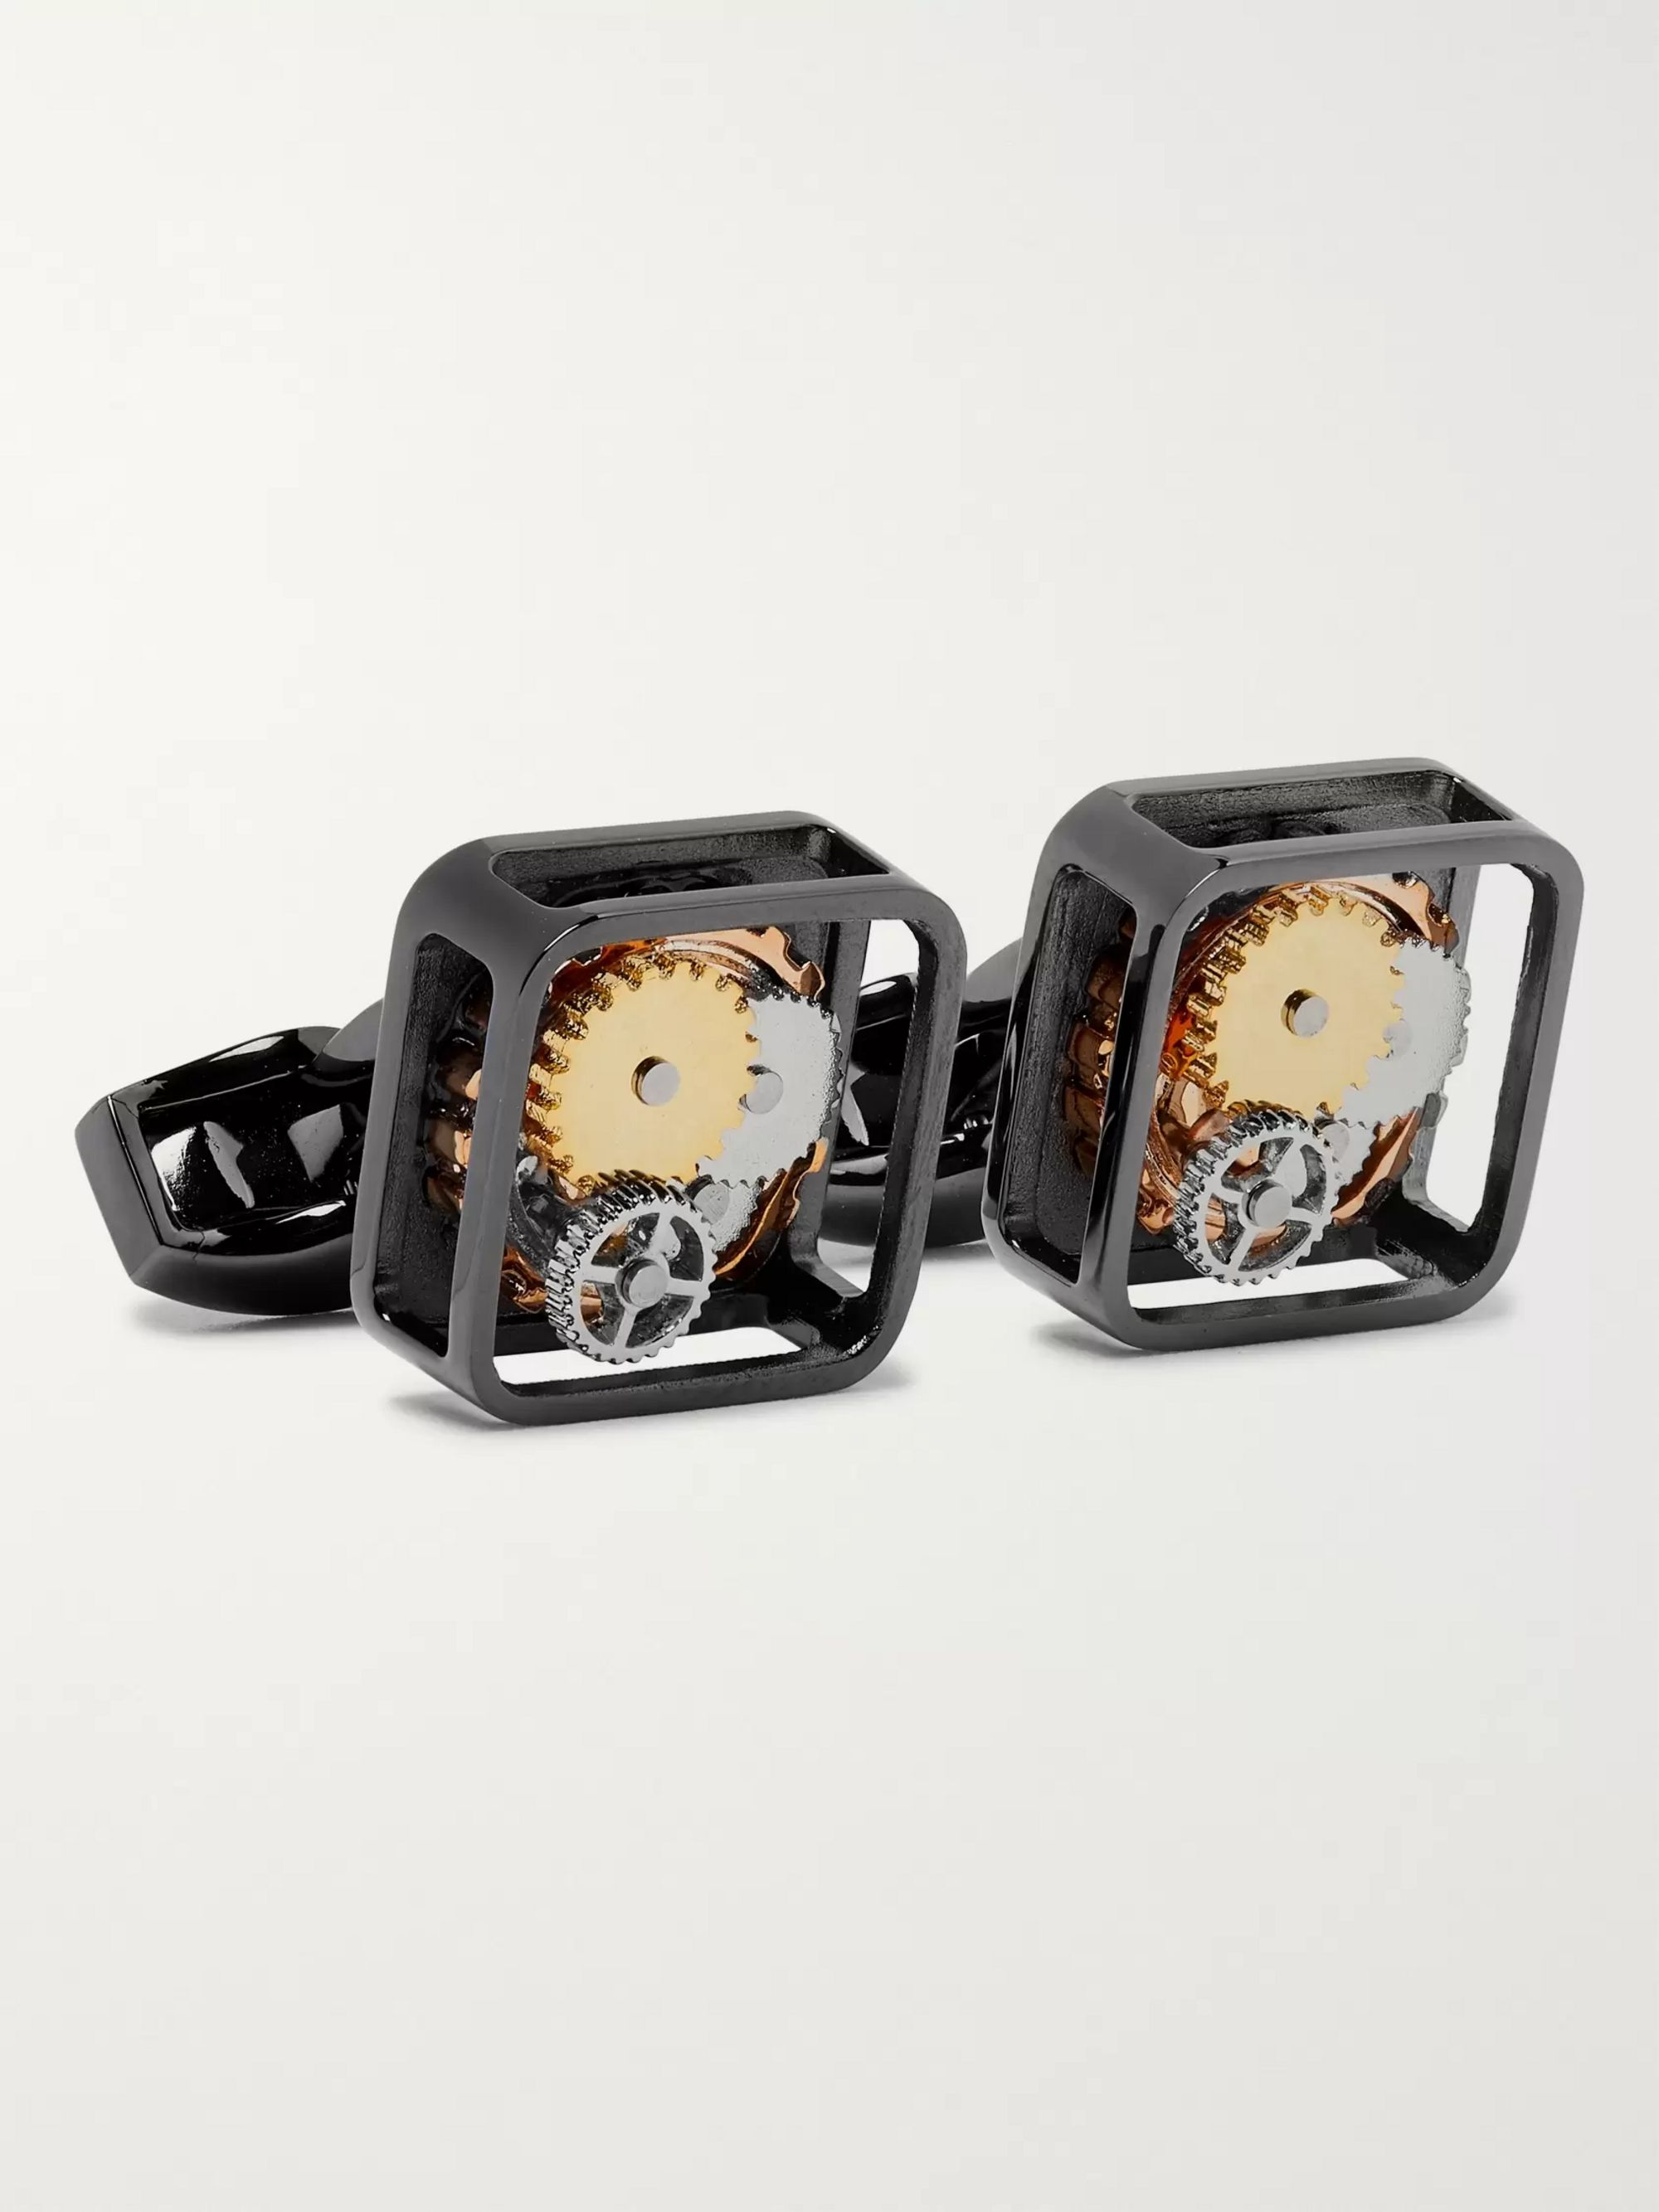 TATEOSSIAN Square Gear Gunmetal-Plated Cufflinks